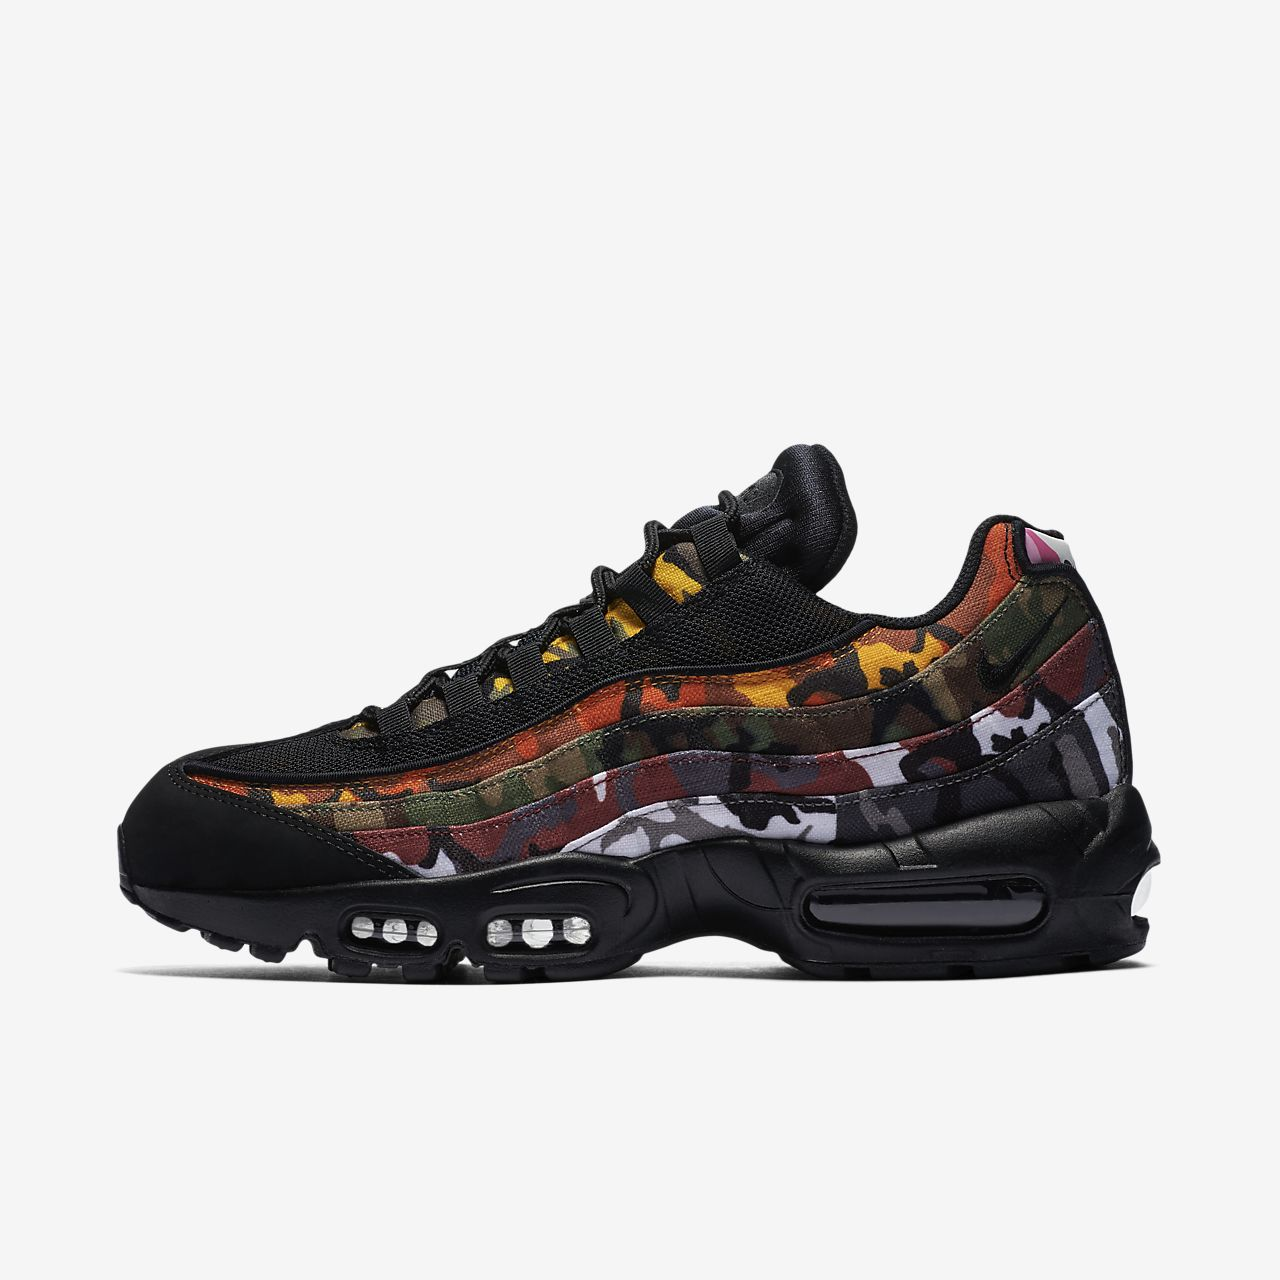 Chaussure Nike Air Max 95 OG MC SP pour Homme